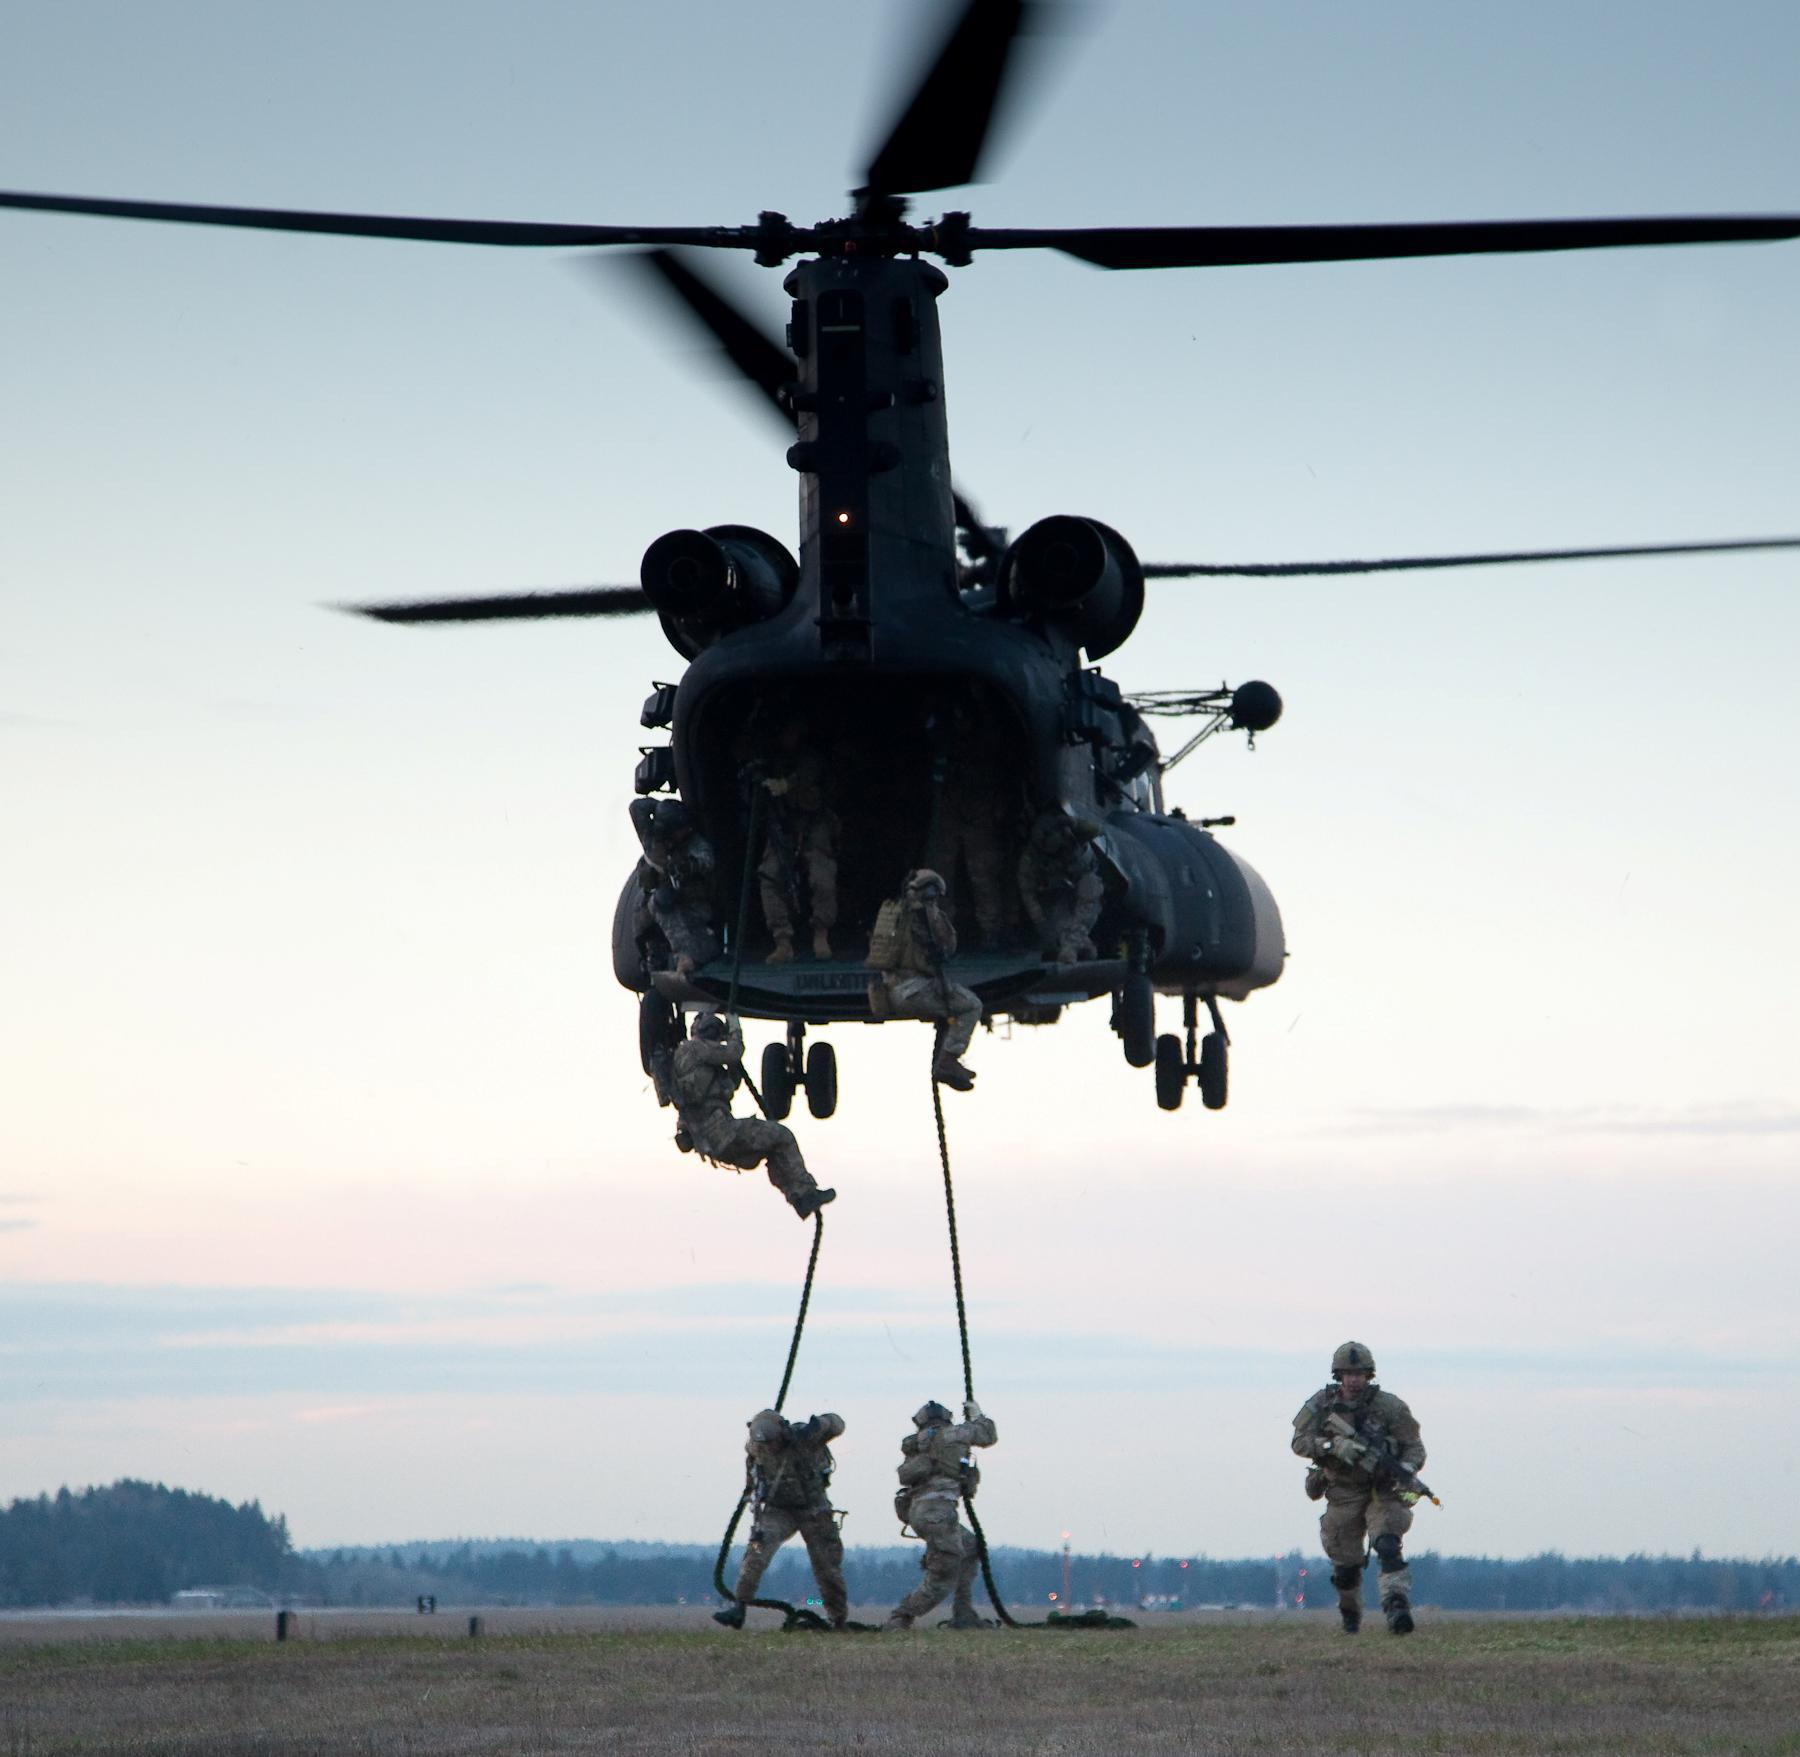 Rangers from B Company, 2nd Battalion, 75th Ranger Regiment, practice Fast Rope Insertion and Extraction (FRIES) out of an MH-47 from the 160th Special Operations Aviation Regiment during 2nd Battalion's Task Force Training at Joint Base Lewis-McCord, Wash., March 27, 2013. U.S. Army photo by Pfc. Connor Mendez